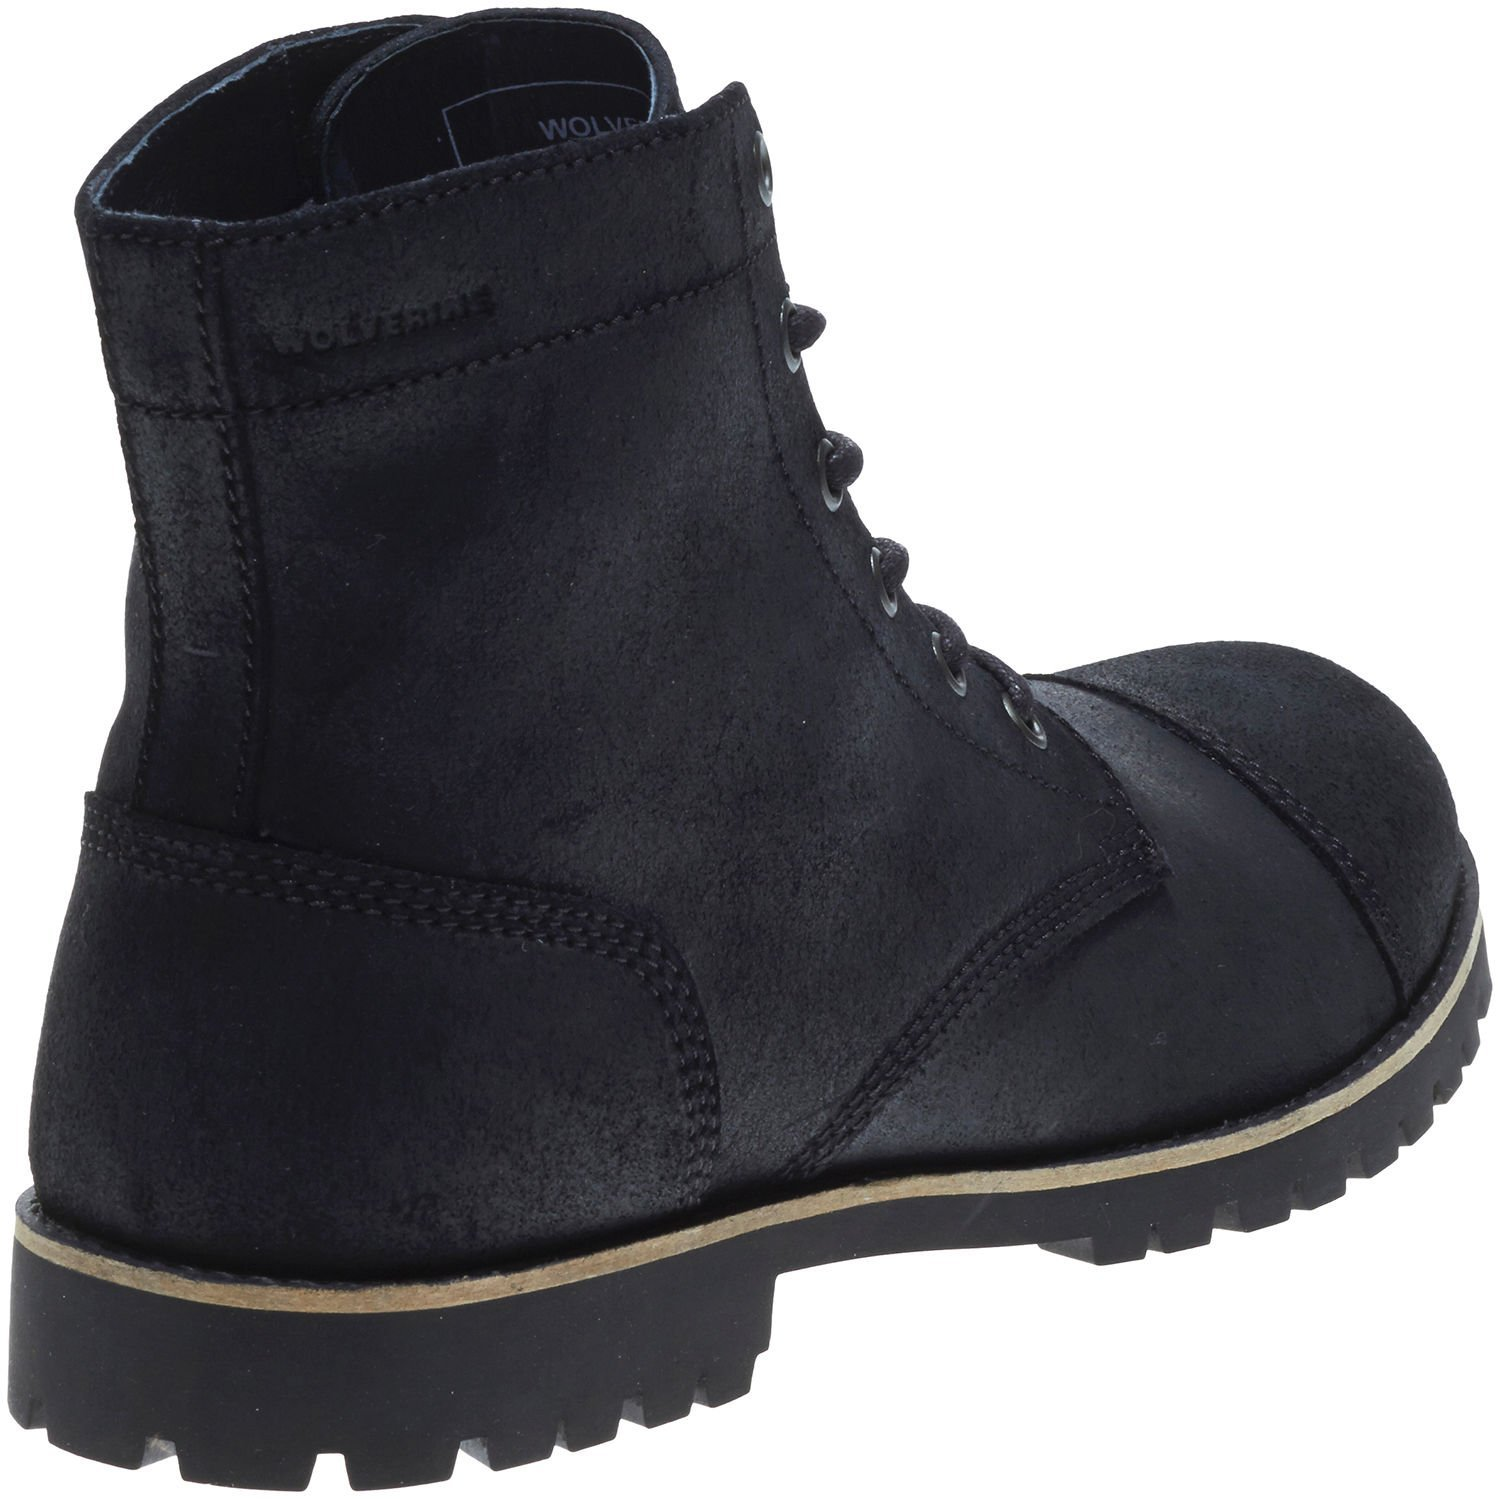 092814956aa Wolverine Men's Black Leather Wilbur WPF Leather Boot 11 D(M) US